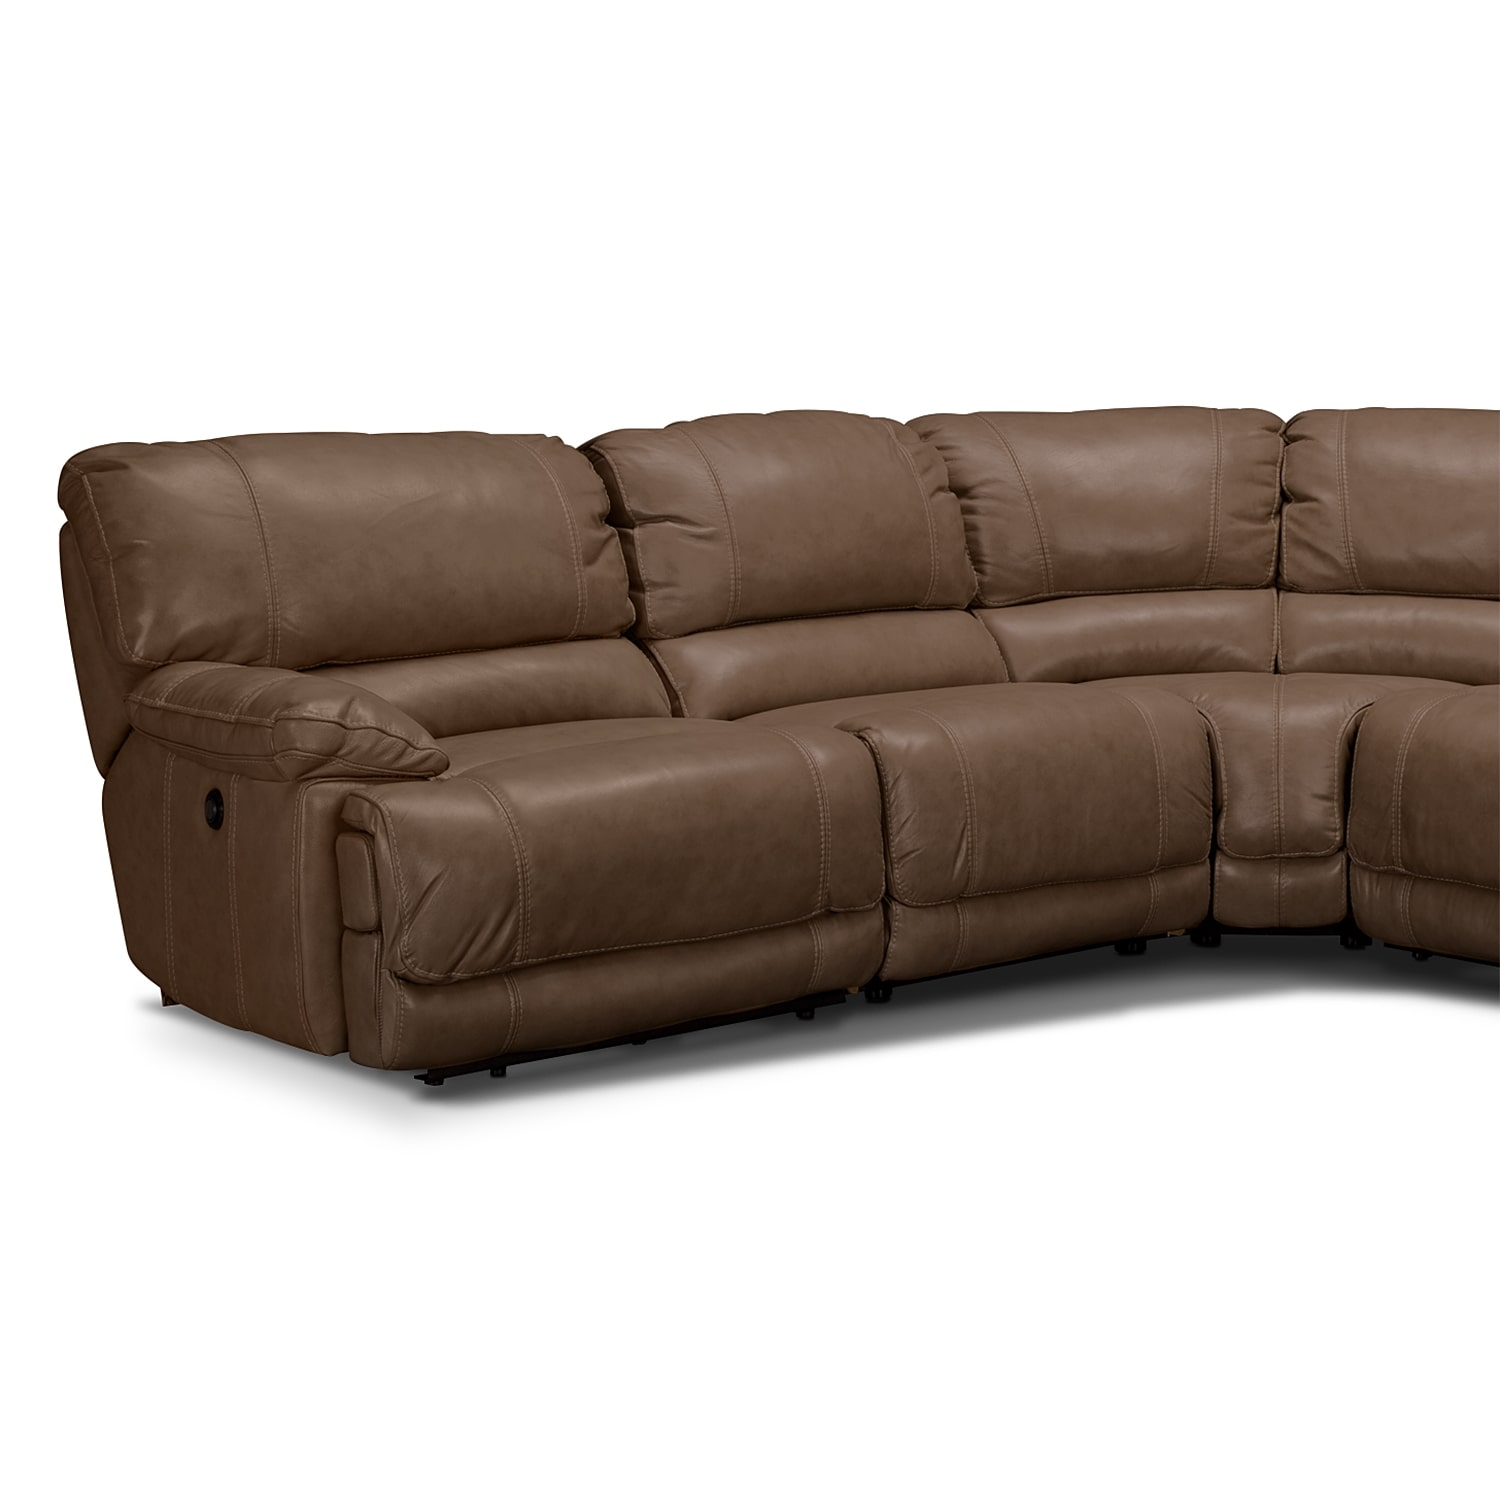 213341 besides 1577163 additionally 1580438 furthermore 4297202P moreover 11303634. on chairs at value city furniture